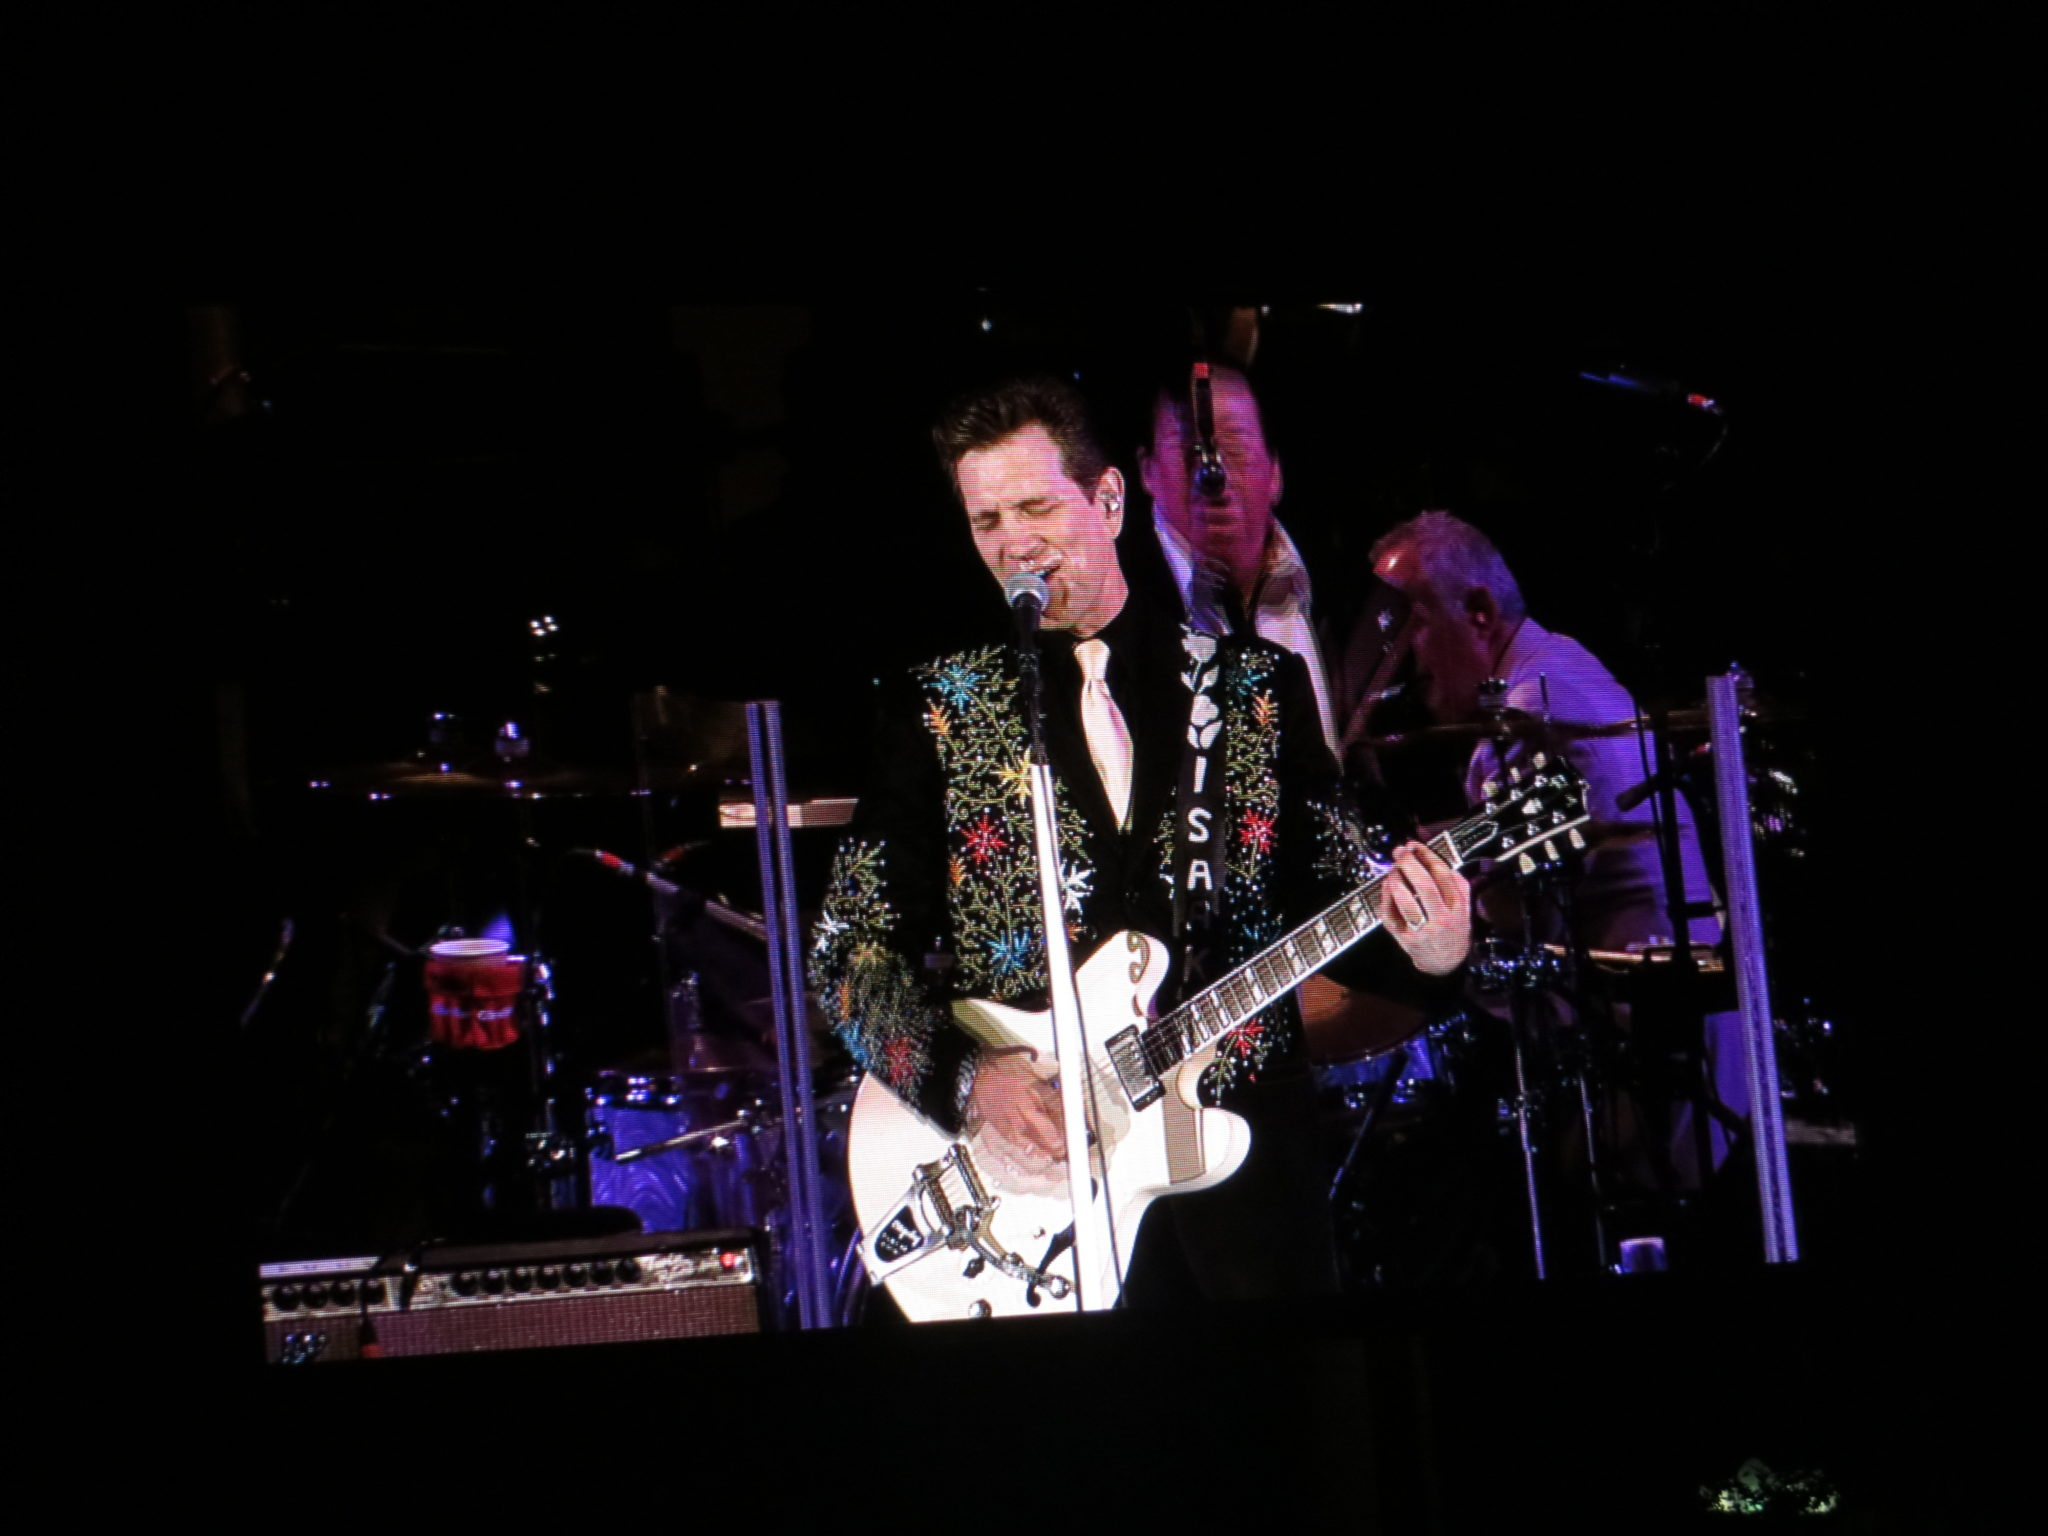 Chris Isaak at the Hollywood Bowl